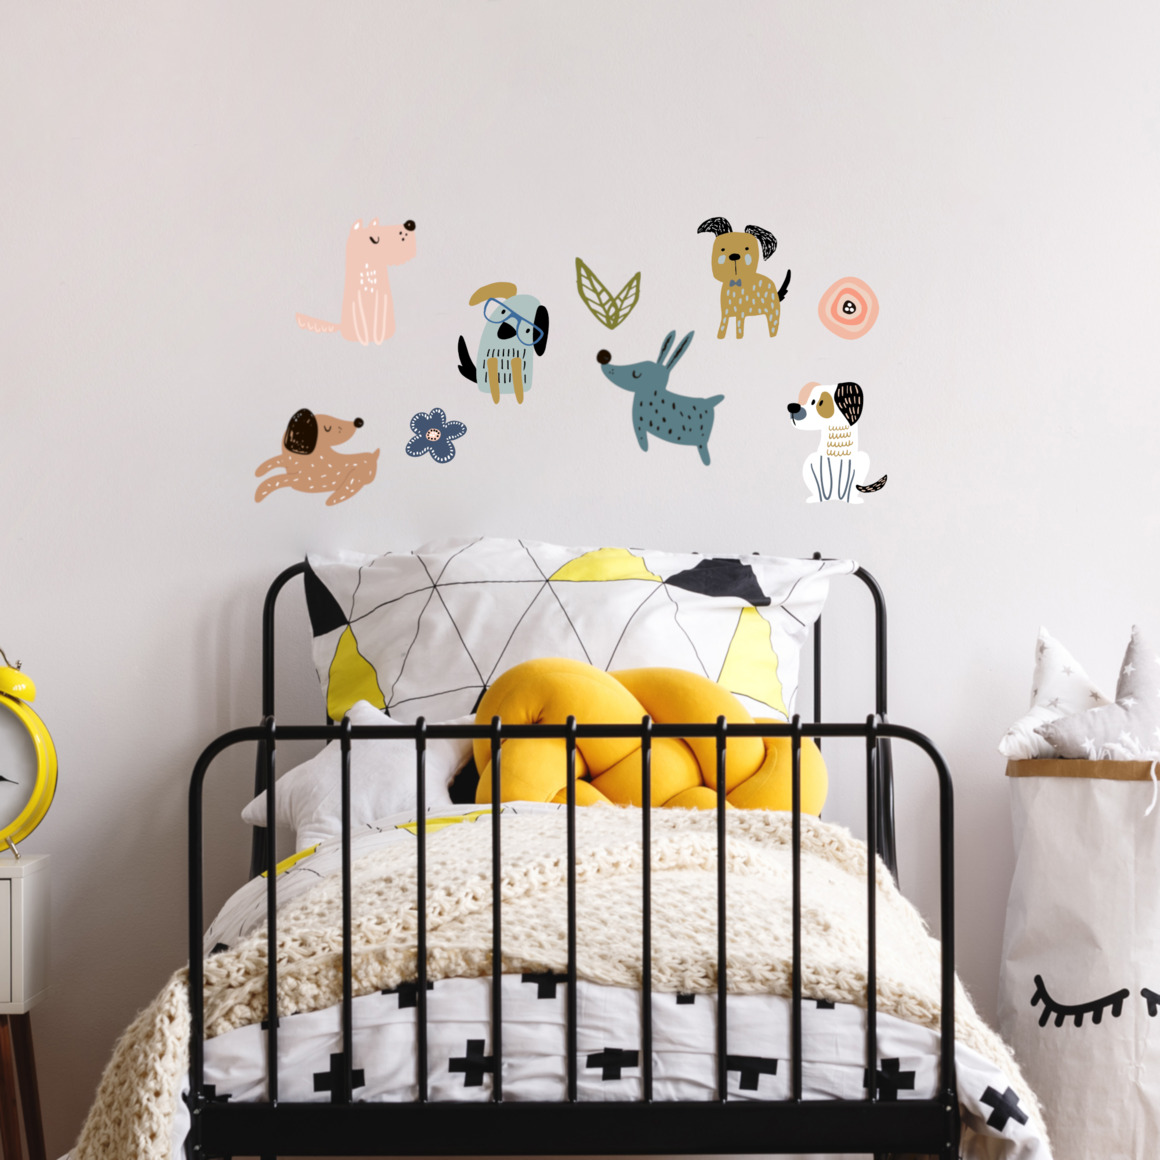 Fabric wall decals - Dogs   Trada Marketplace